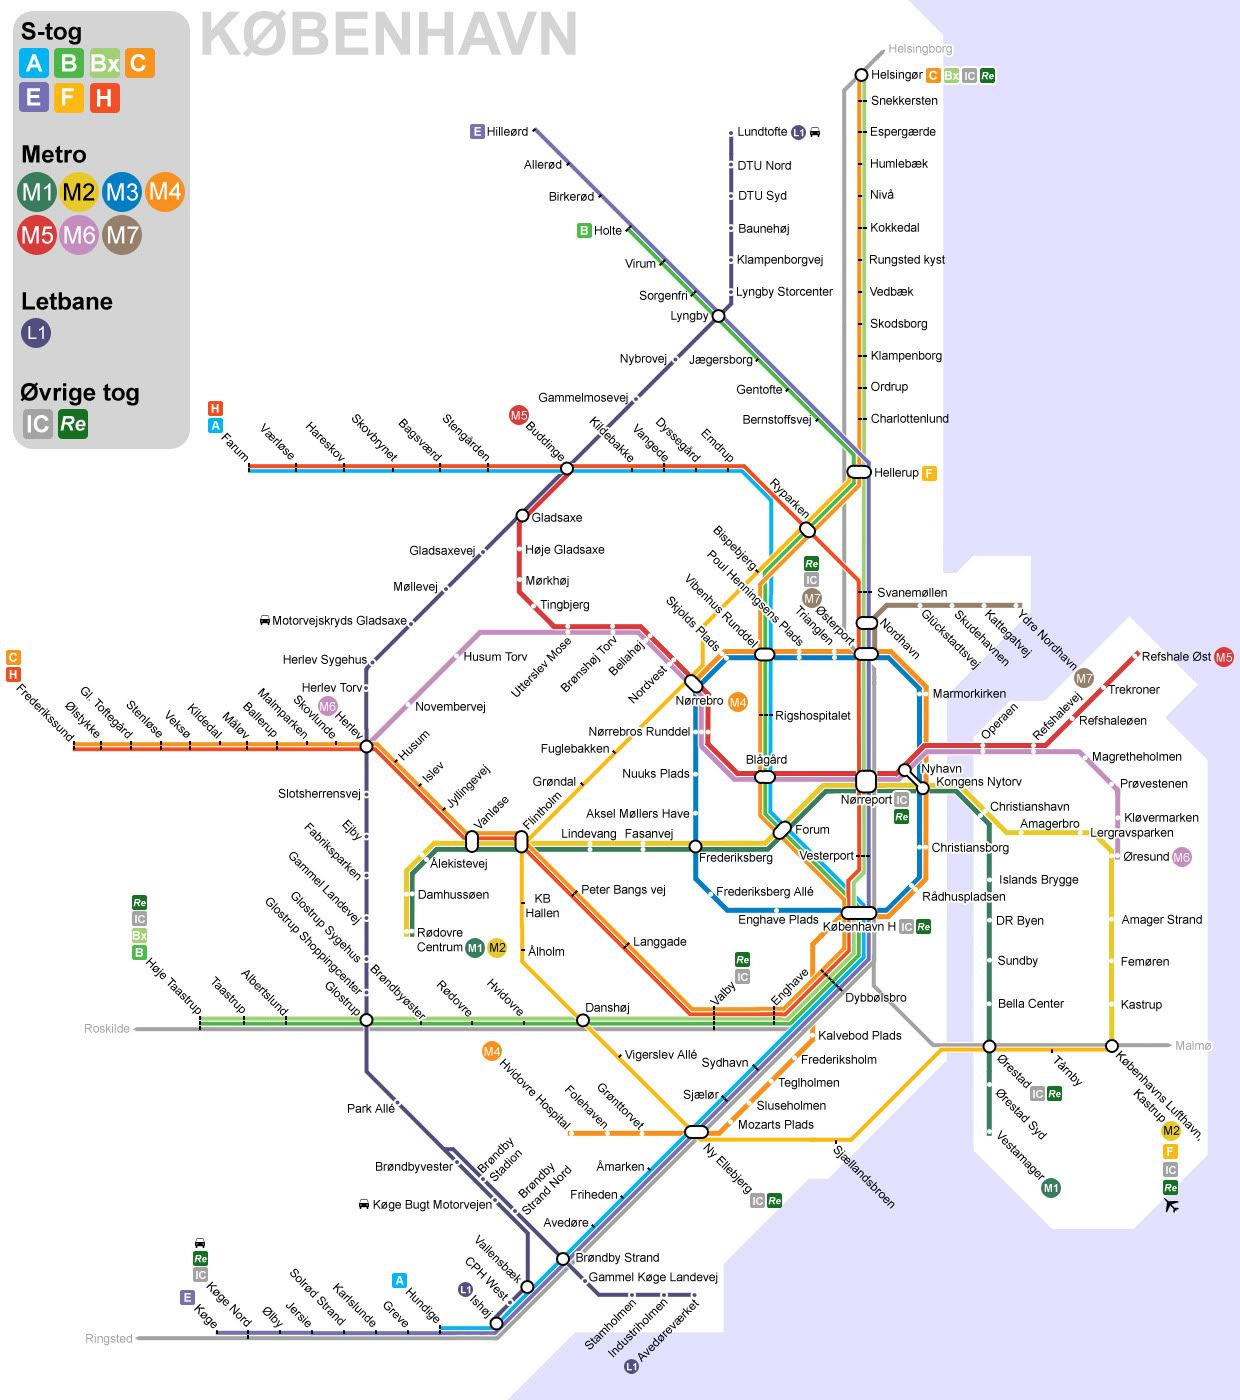 Copenhagen public transport map